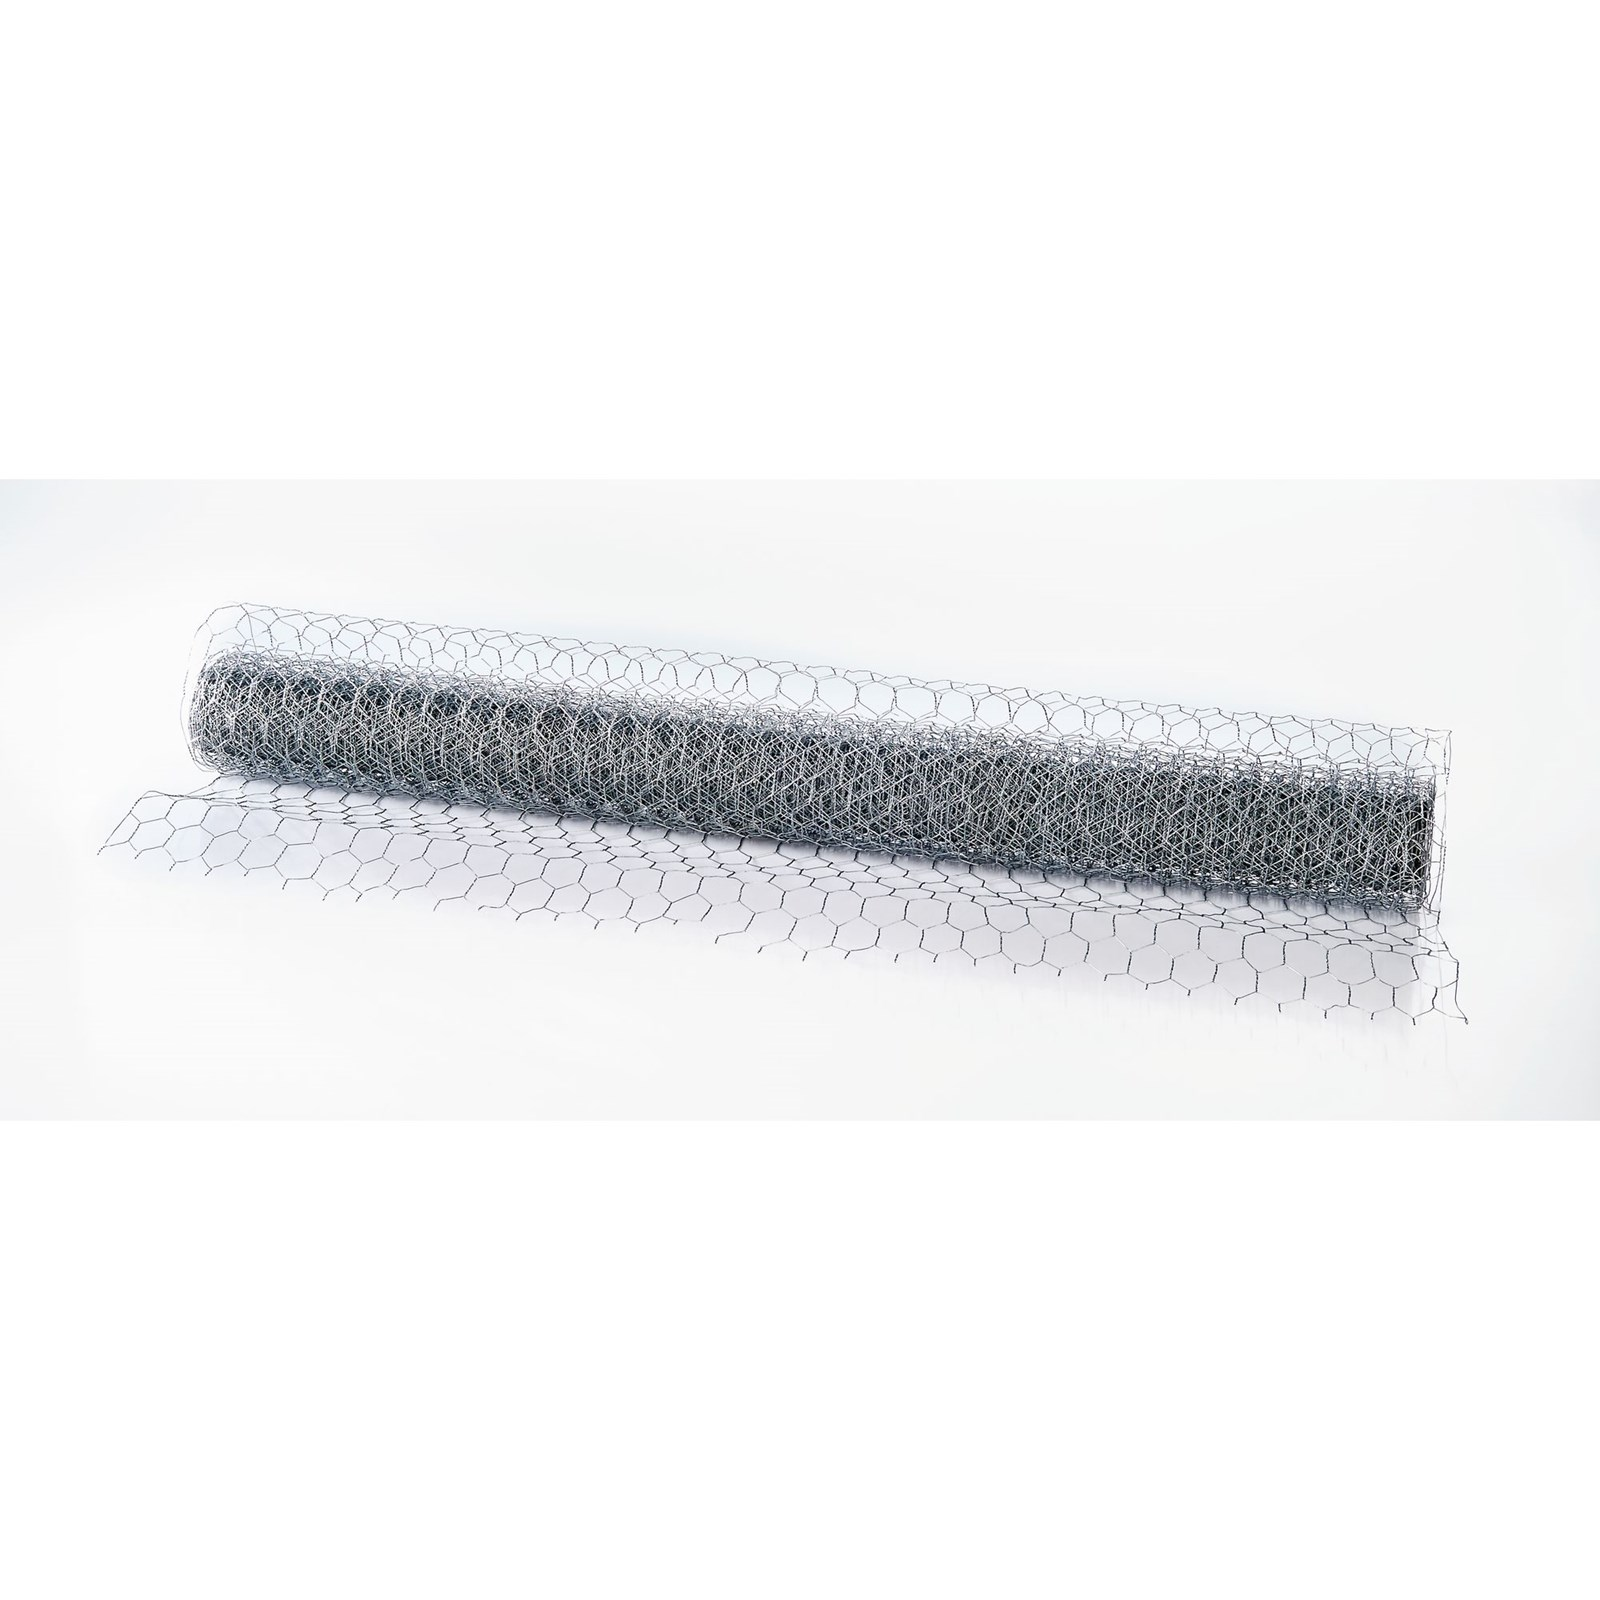 Modelling Wire Netting 10m